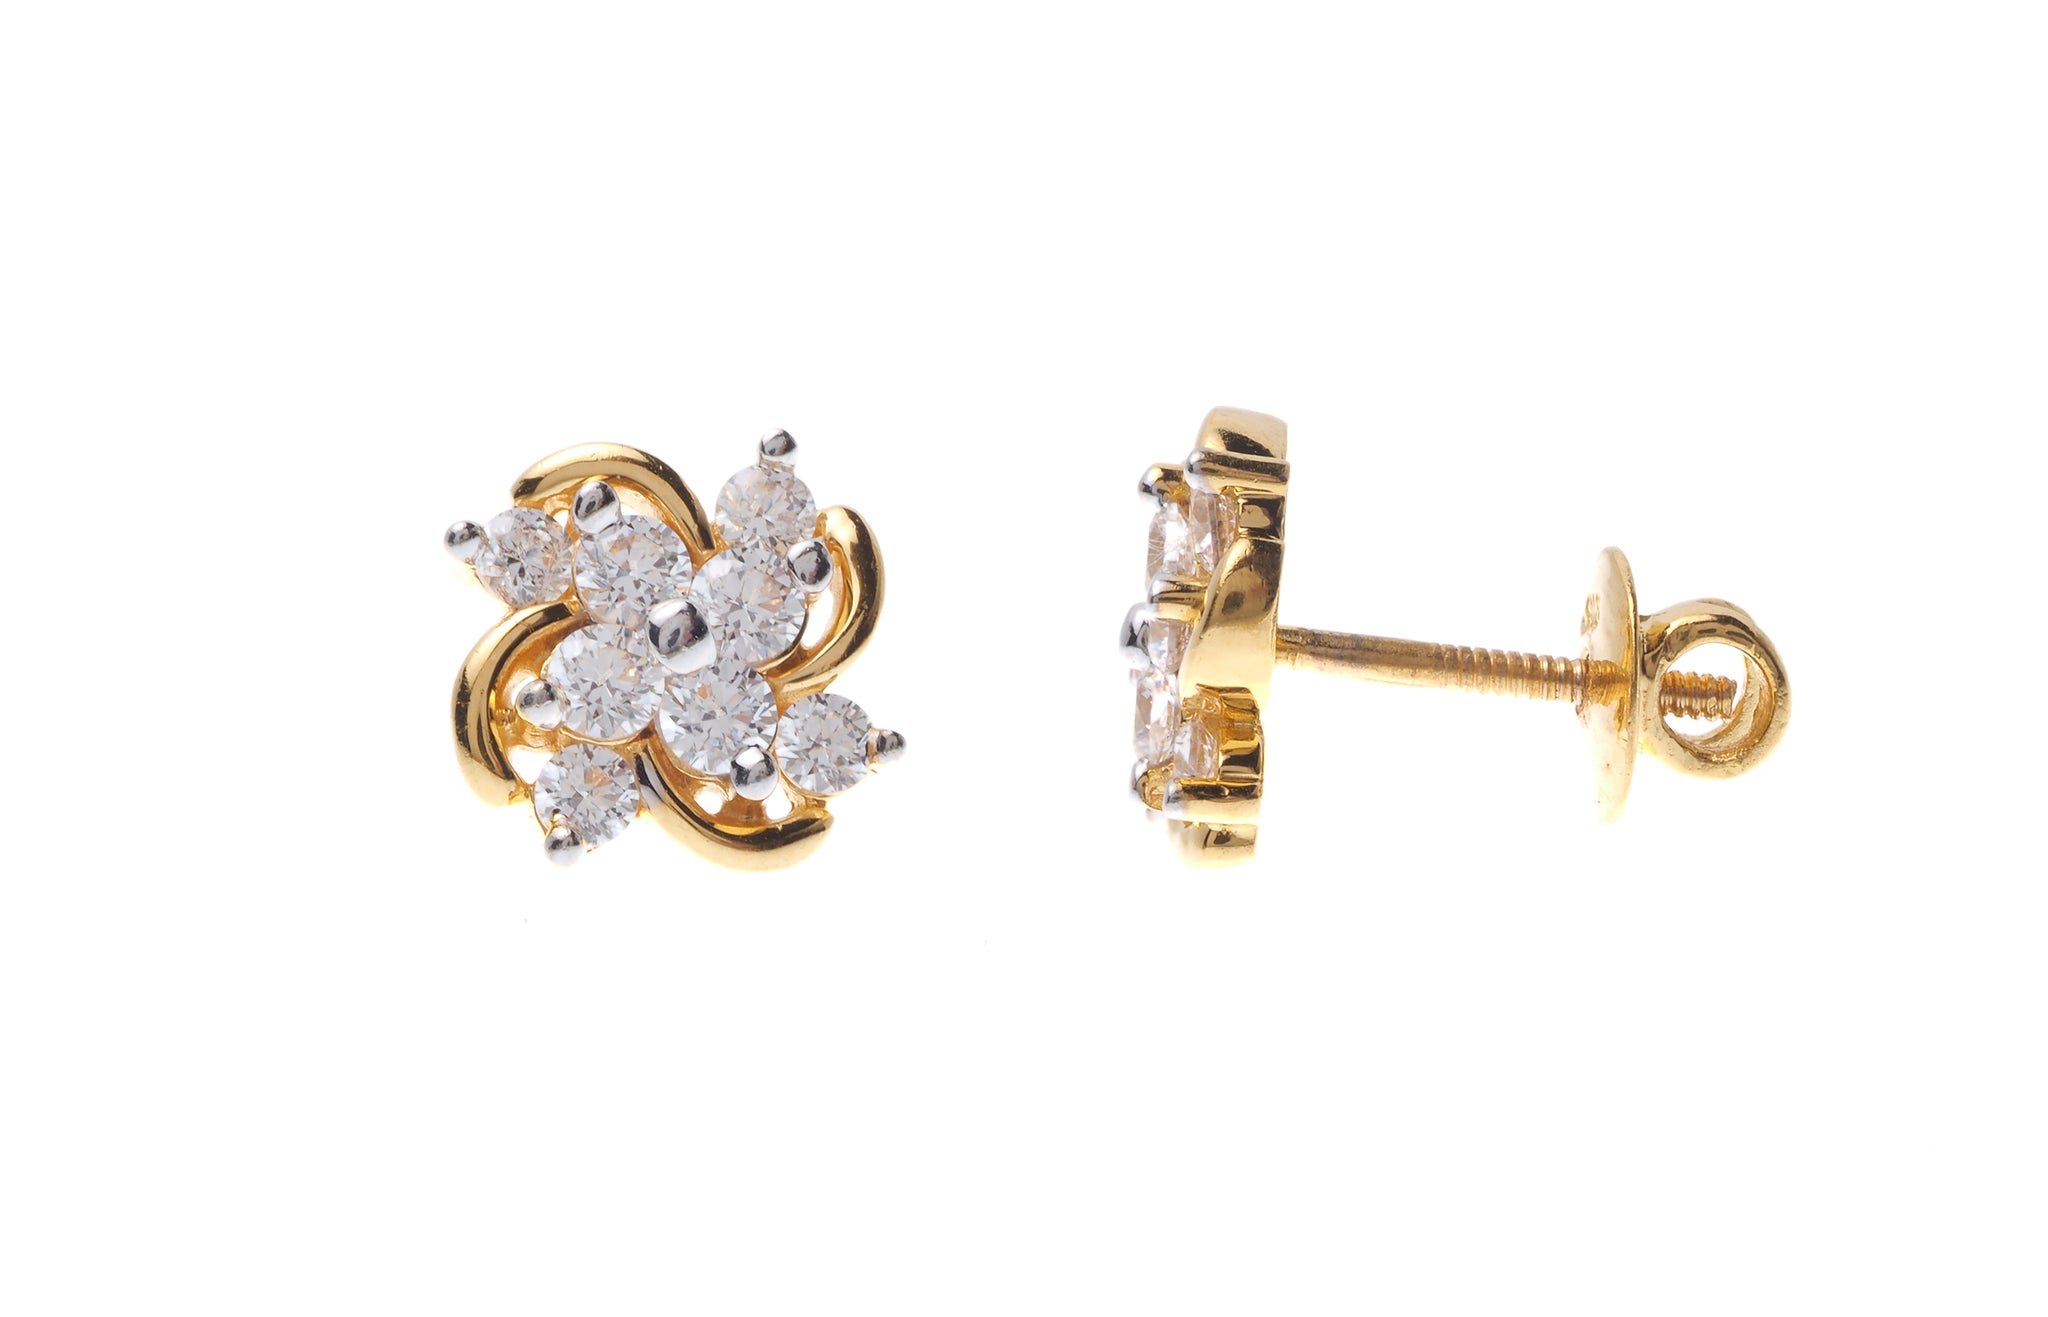 22ct Gold Cubic Zirconia Stud Earrings (4.42g) ET7285